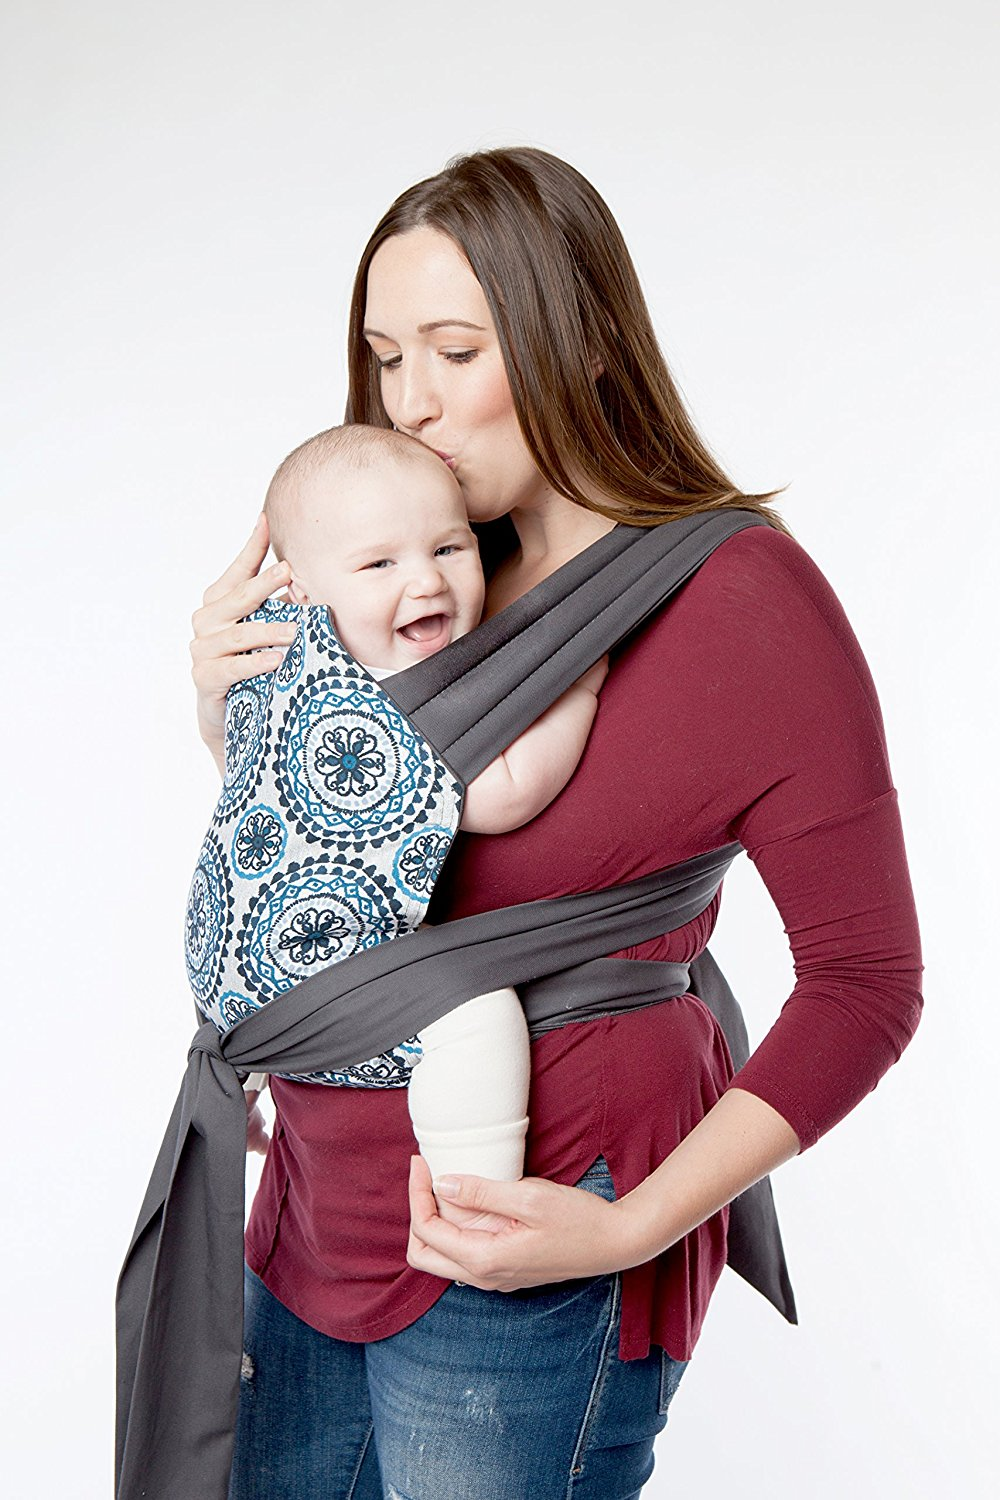 49a031f950e Babyhawk Carrier Reviews. babyhawk mobi. When busy moms have a new baby to  deal with